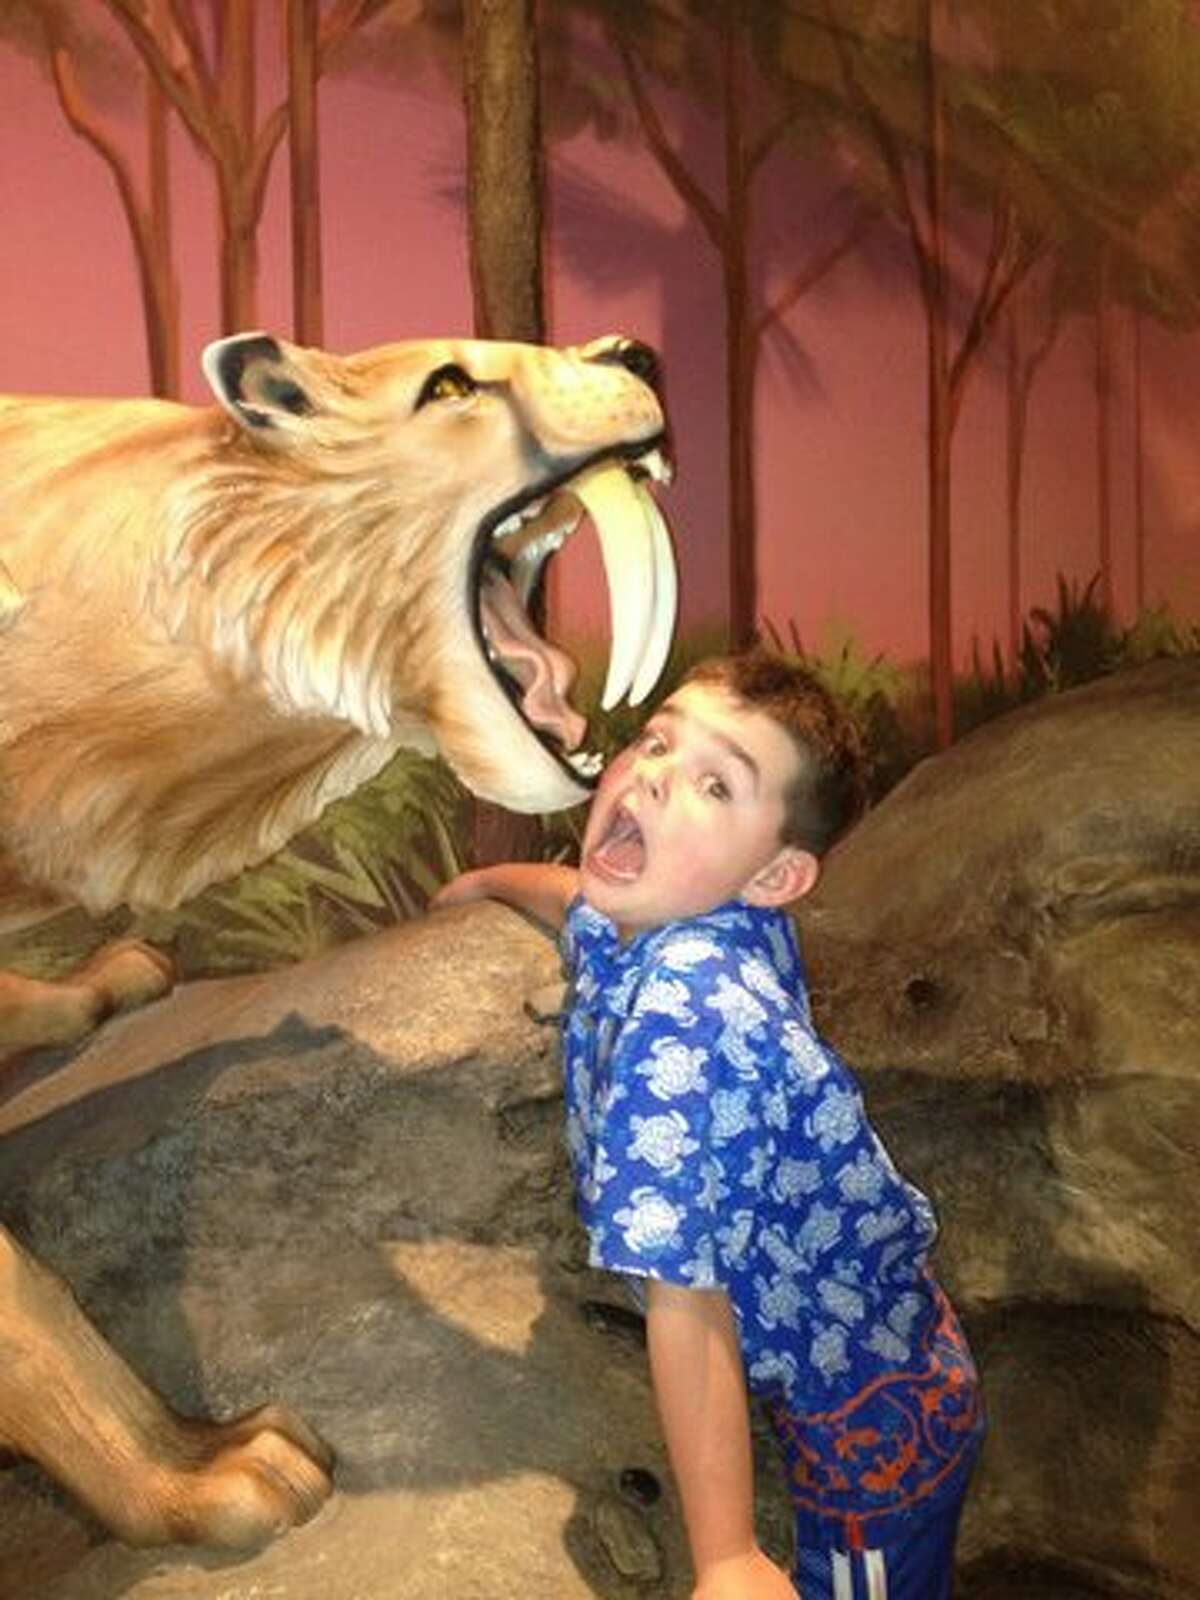 Ken and Grace Wakeman of Colonie watch Grandson Patrick Monahan of Colchester VT as he is about to get consumed by a Saber-toothed tiger. (Ken Wakeman, Colonie) It was taken at The Fort Lauderdale Museum of Science and Discovery